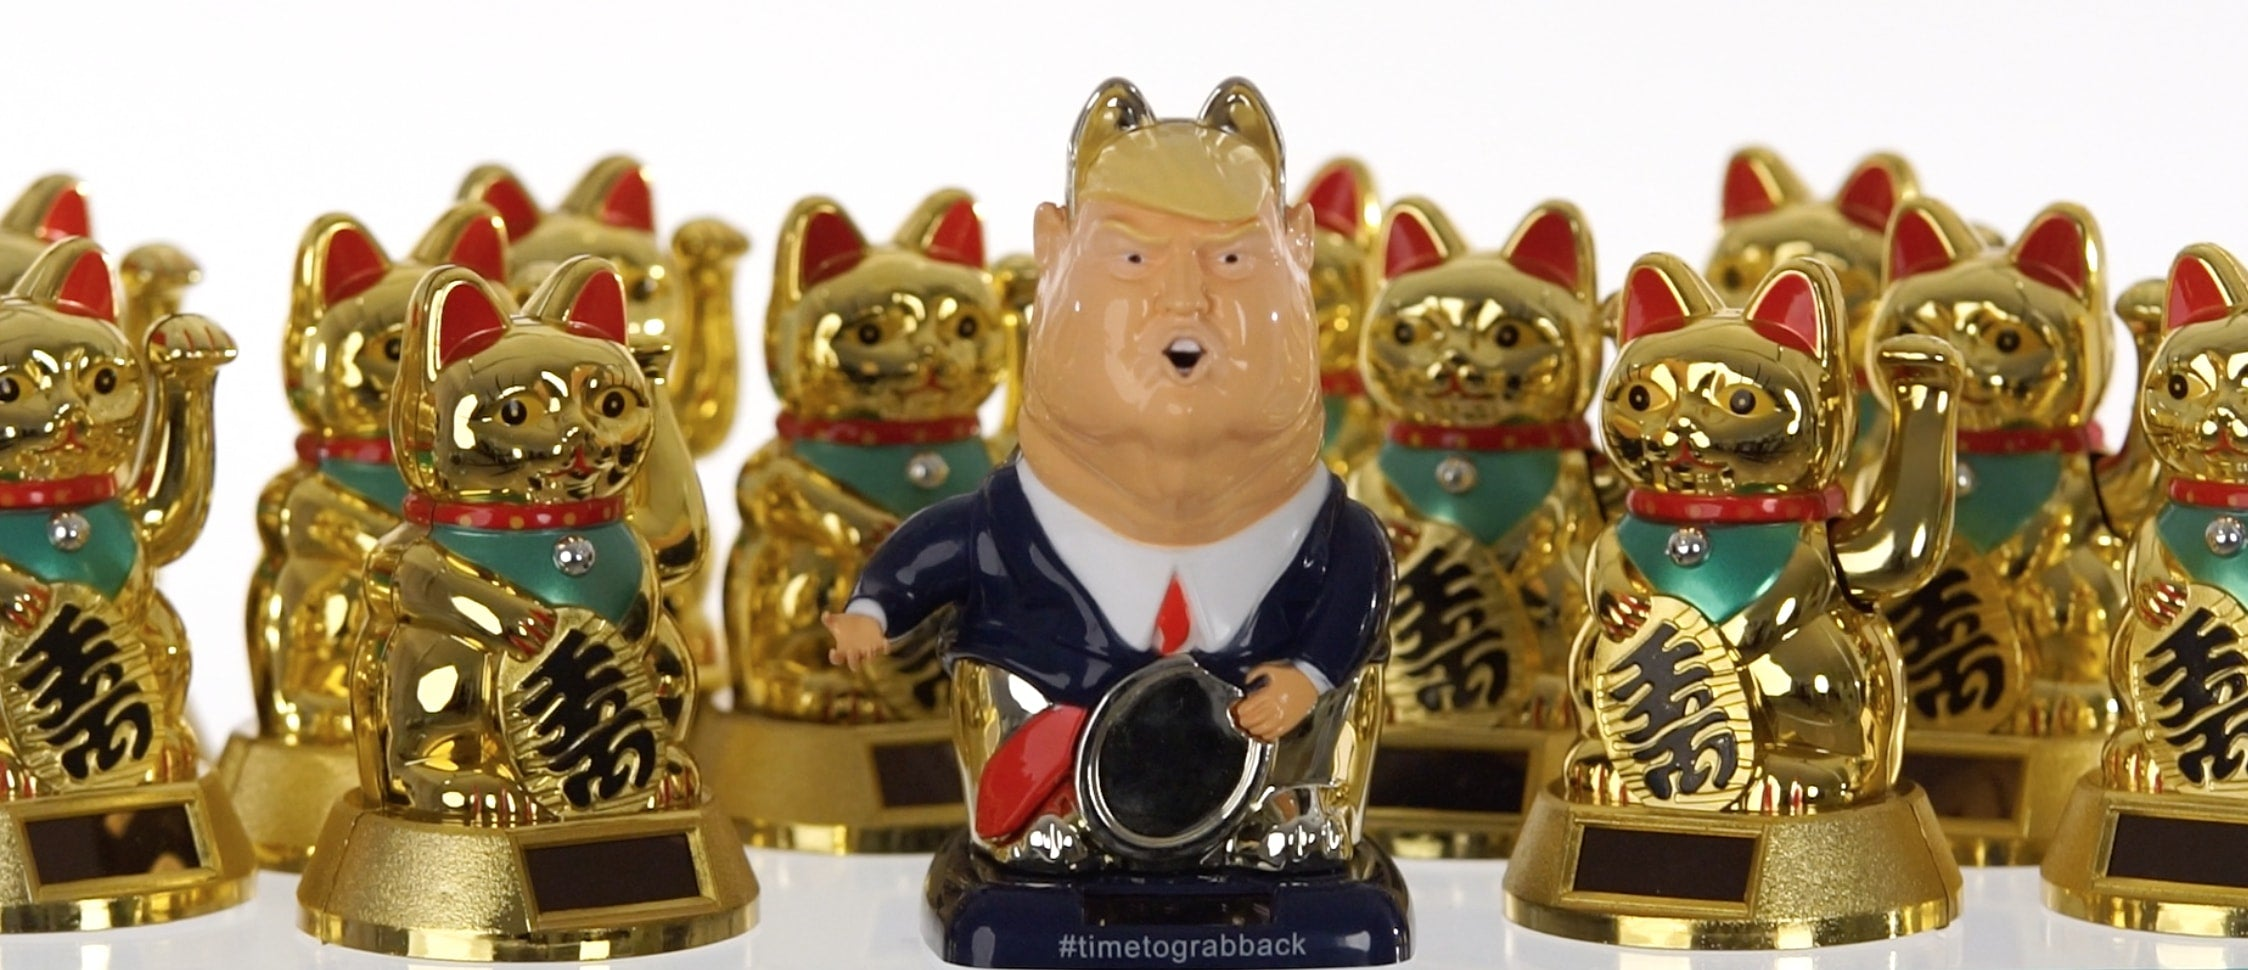 trump action doll political toy maneki necko lucky cat style solar powered charity figure grabhimbythepussycat time to grab back